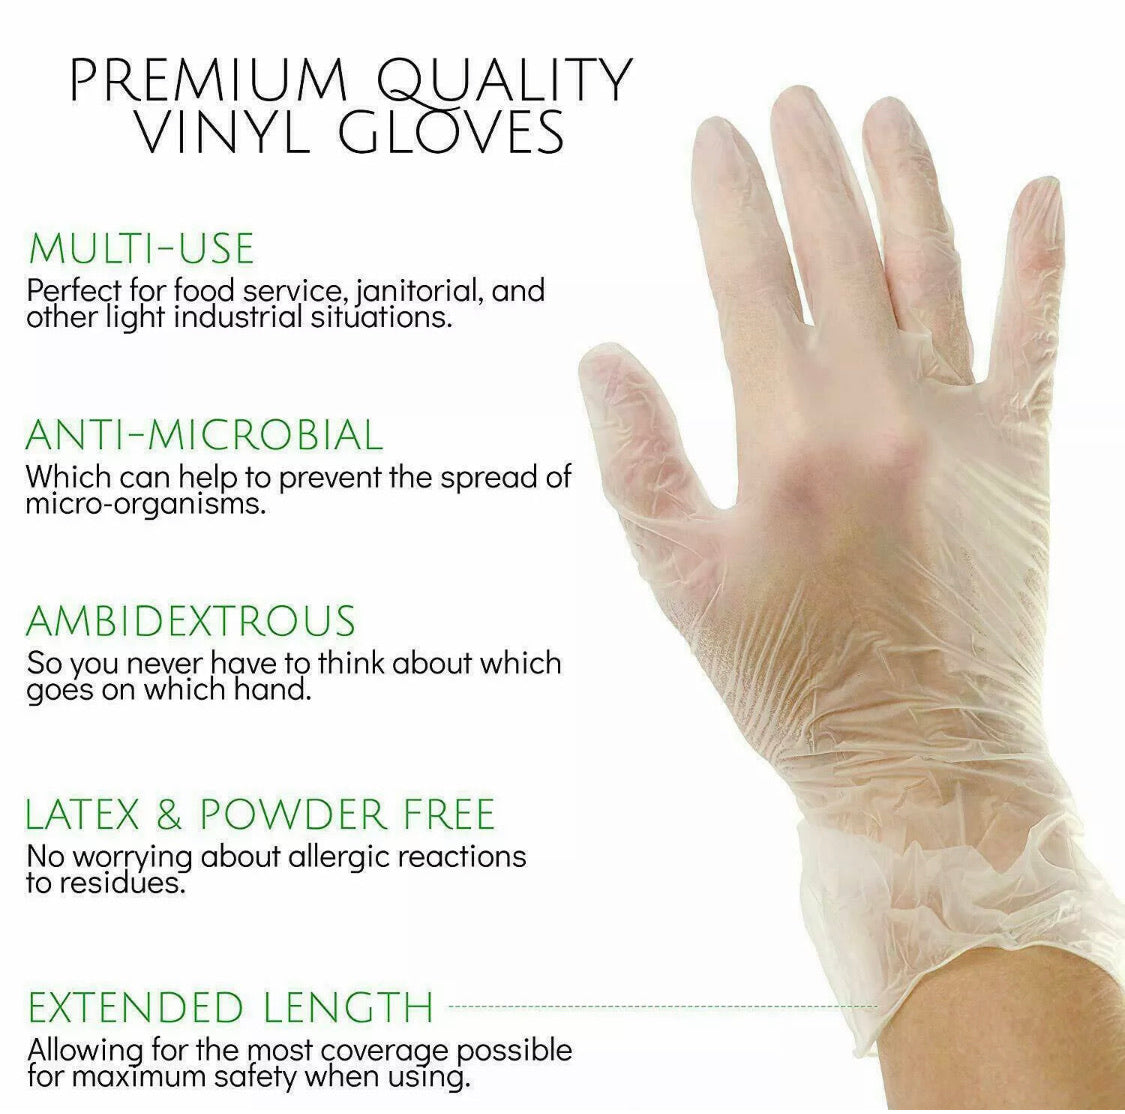 100 PCS Vinyl Gloves Clear Powder Free NON Latex Examination Gloves